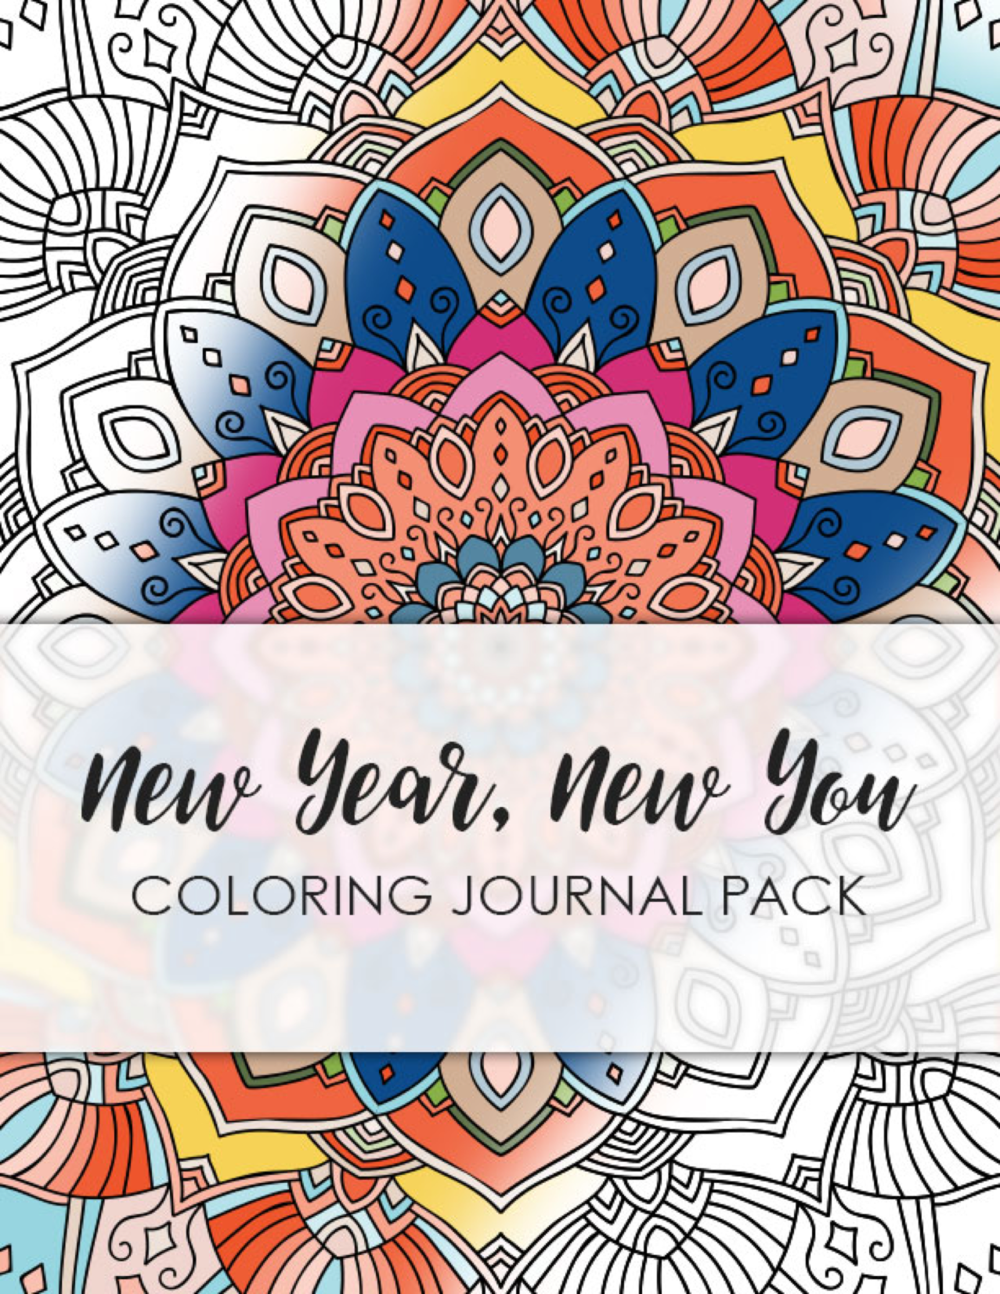 New Year New You Coloring